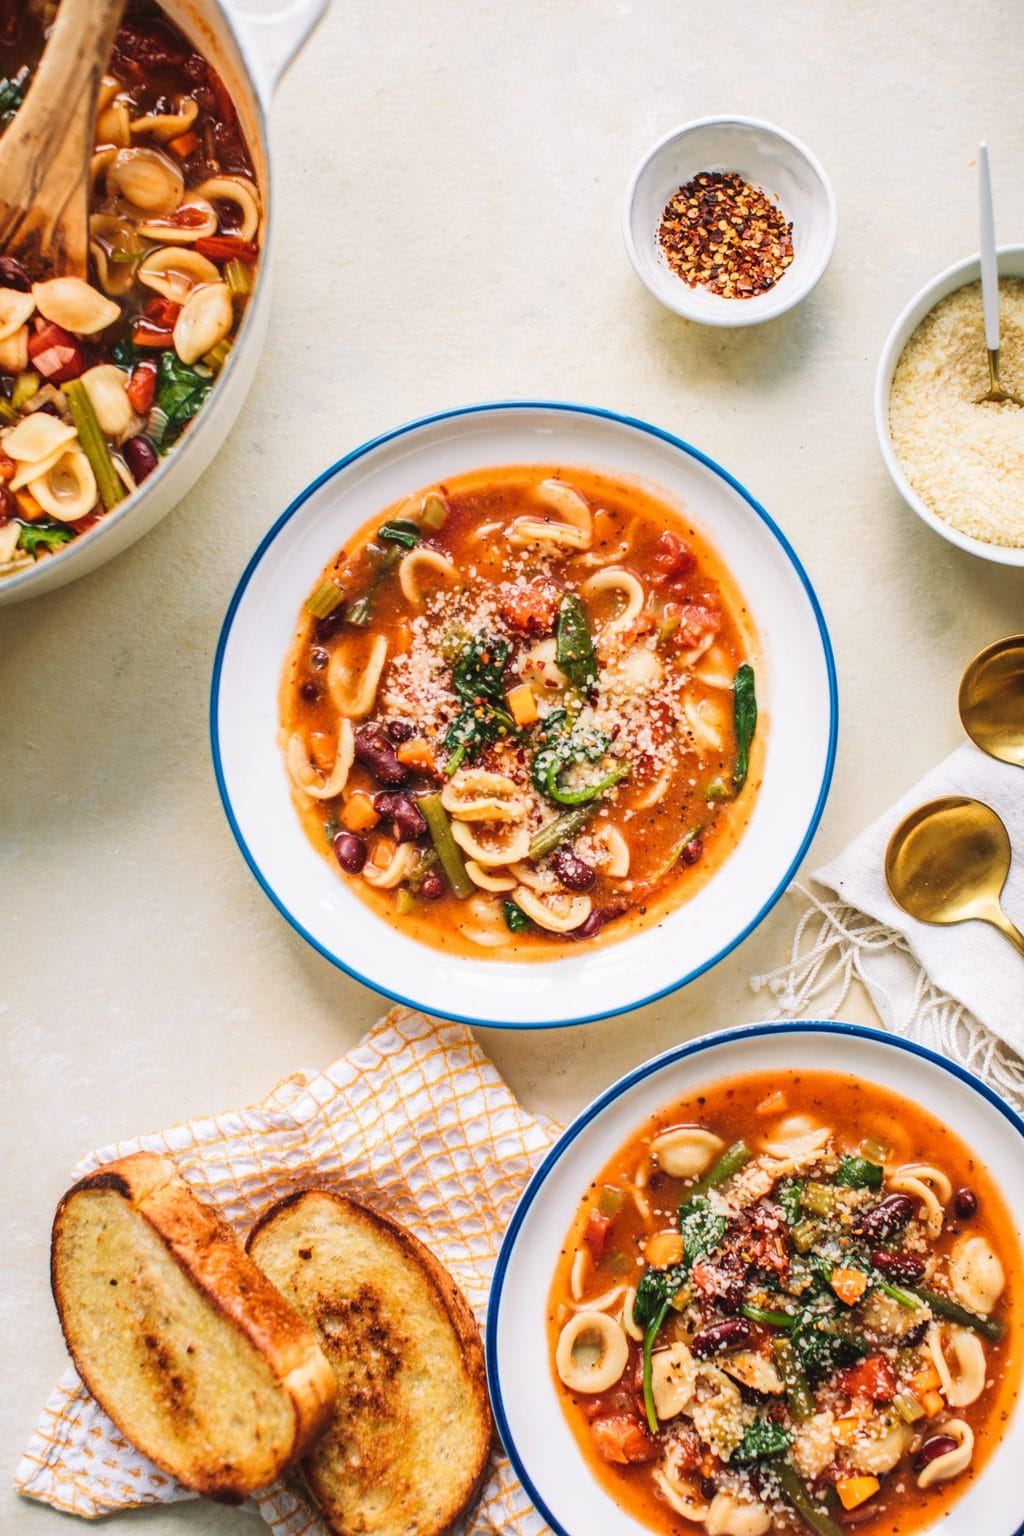 Top shot of two bowls of Minestrone Soup Olive Garden Style next to slices of toast.